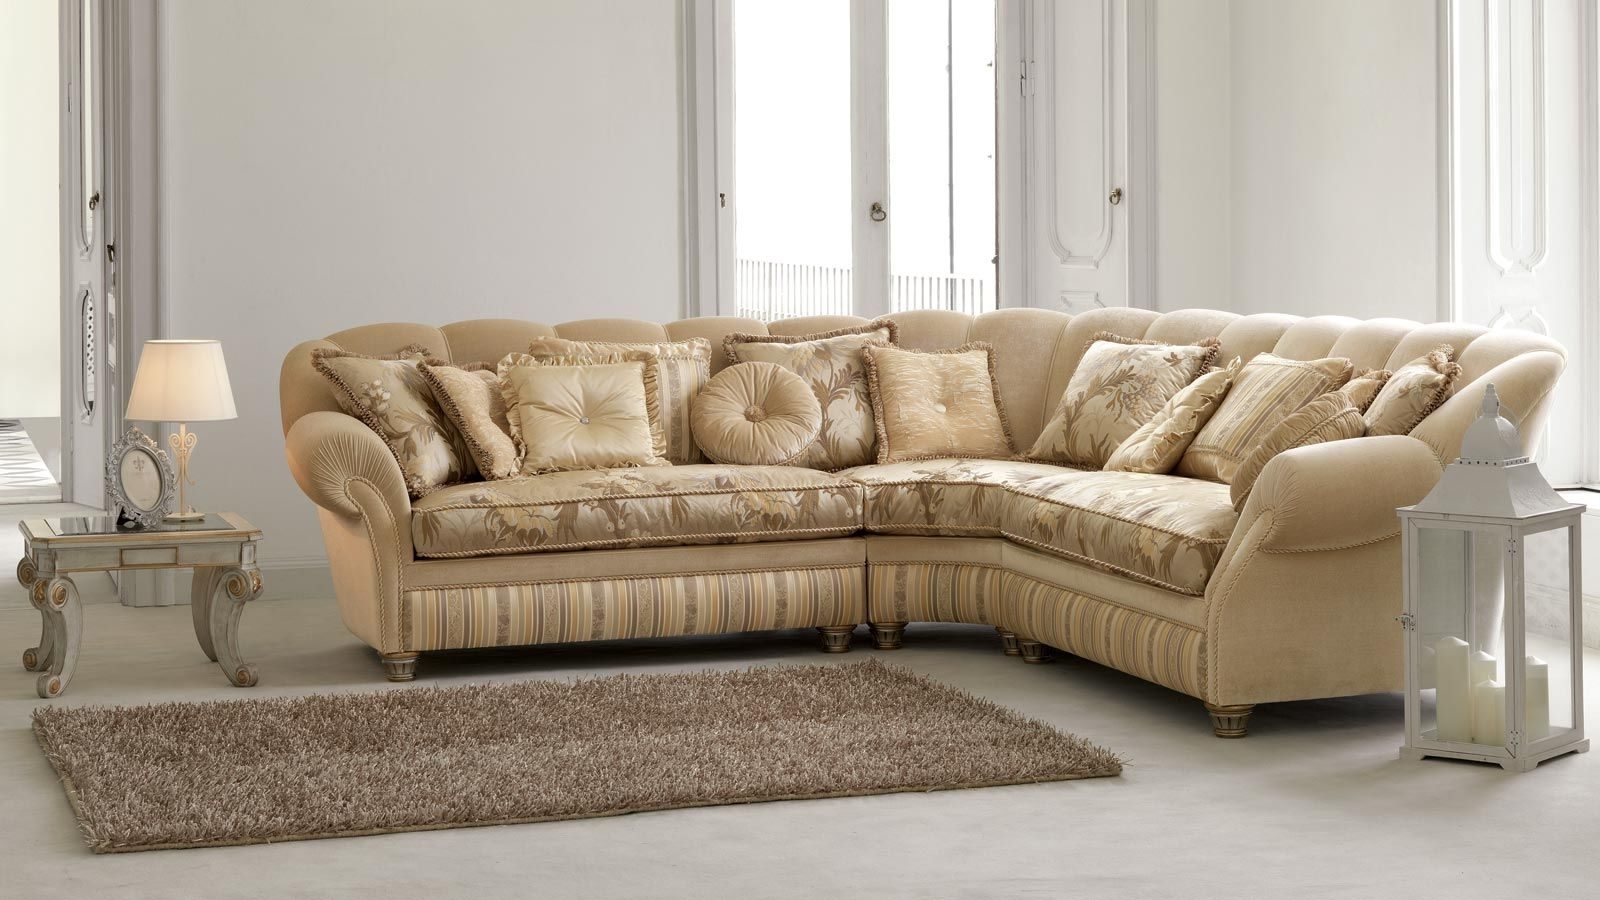 Furniture : Sectional Sofa 80 X 80 Corner Sofa Extension Sectional Regarding 2017 80X80 Sectional Sofas (View 8 of 15)